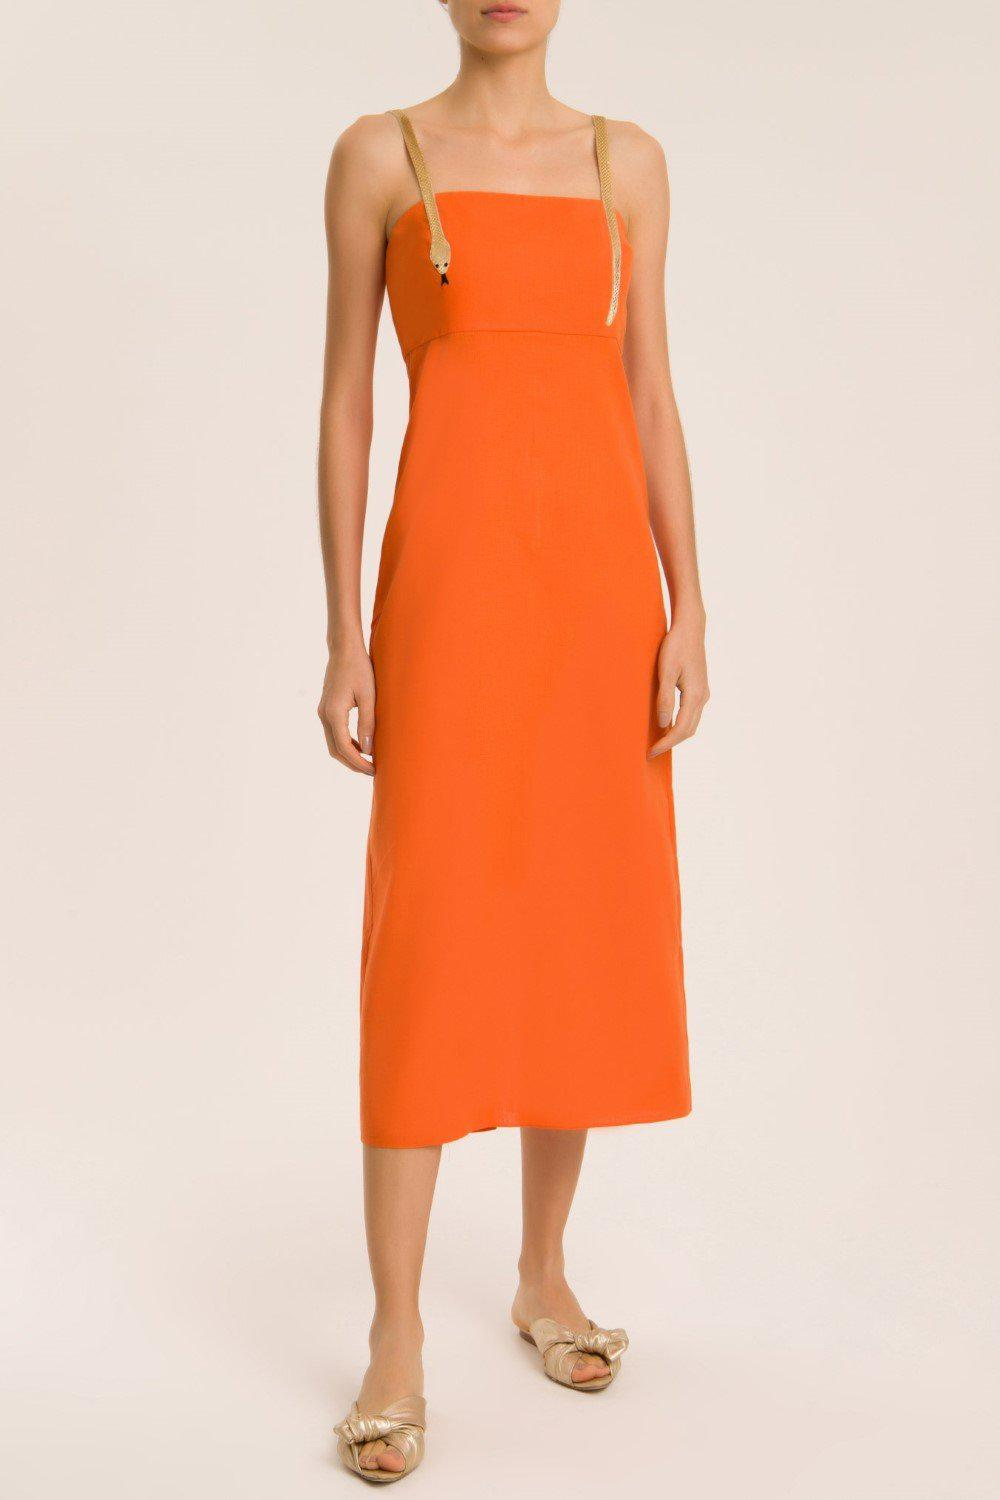 Solid Midi Dress With Golden Serpent Straps